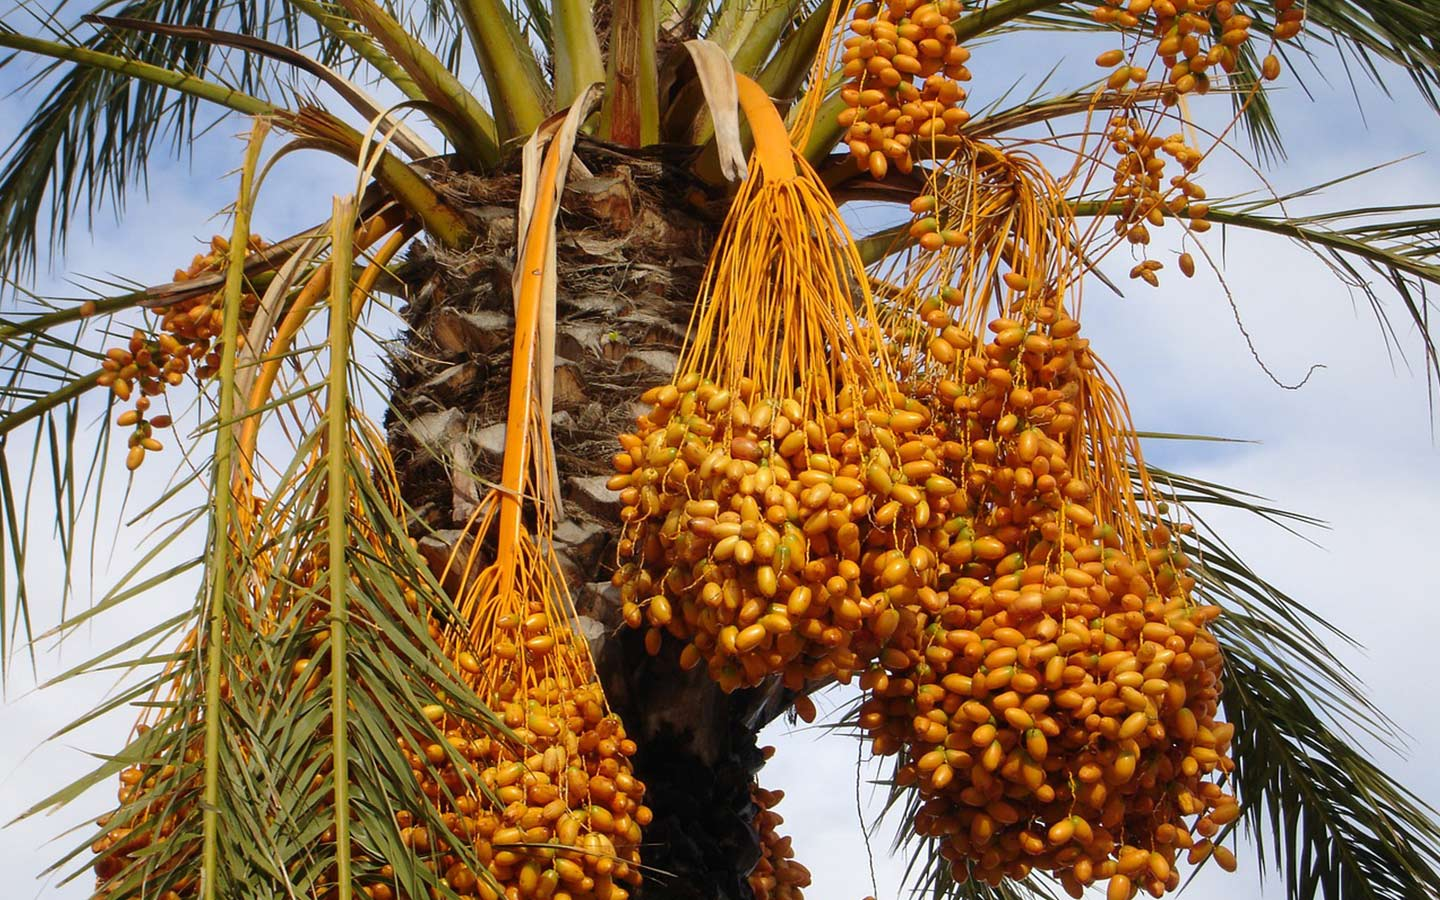 Date palm trees in the UAE